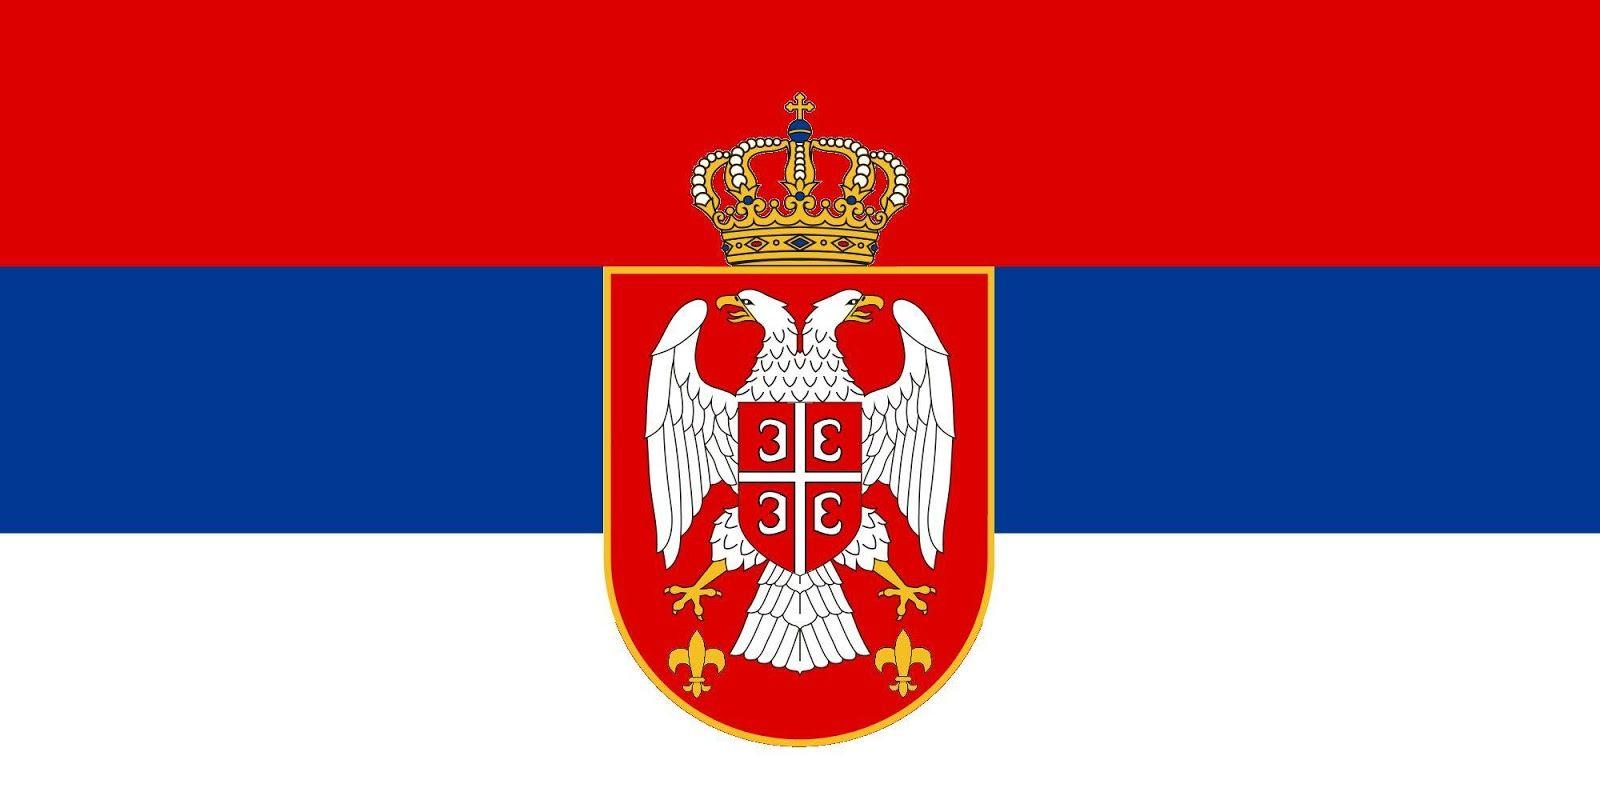 Download Serbia Flag Wallpapers APK 1.0 by FlagWallpapers